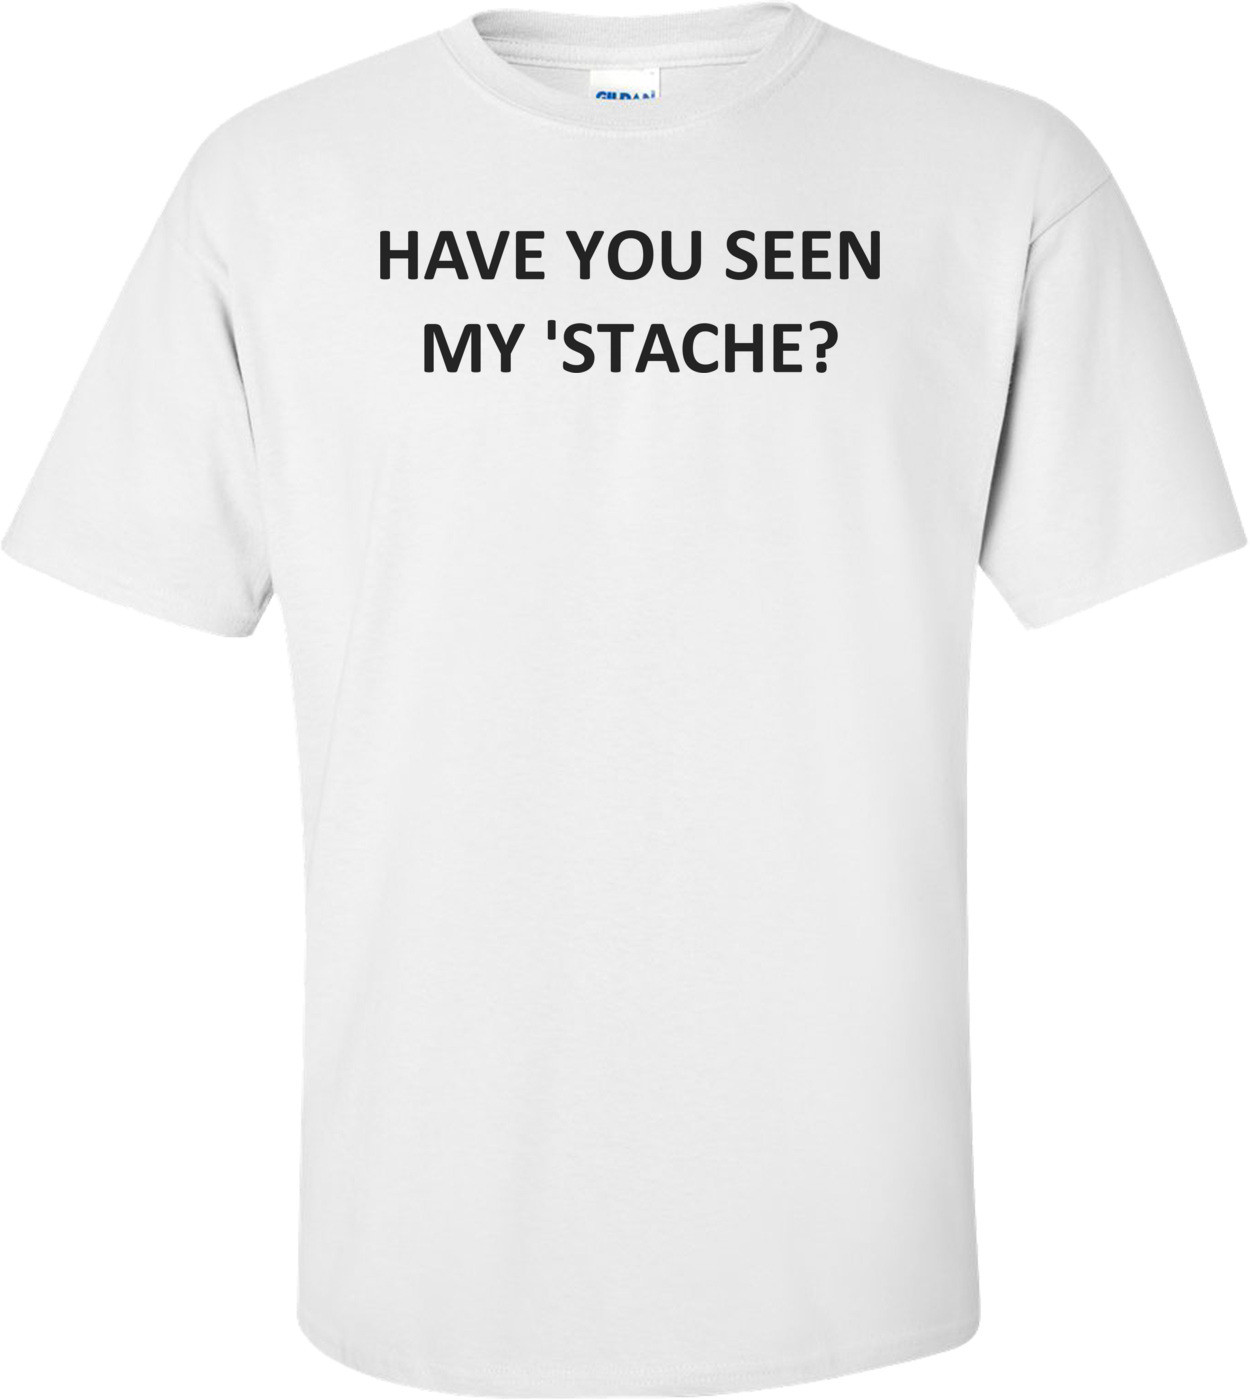 HAVE YOU SEEN MY 'STACHE? Shirt